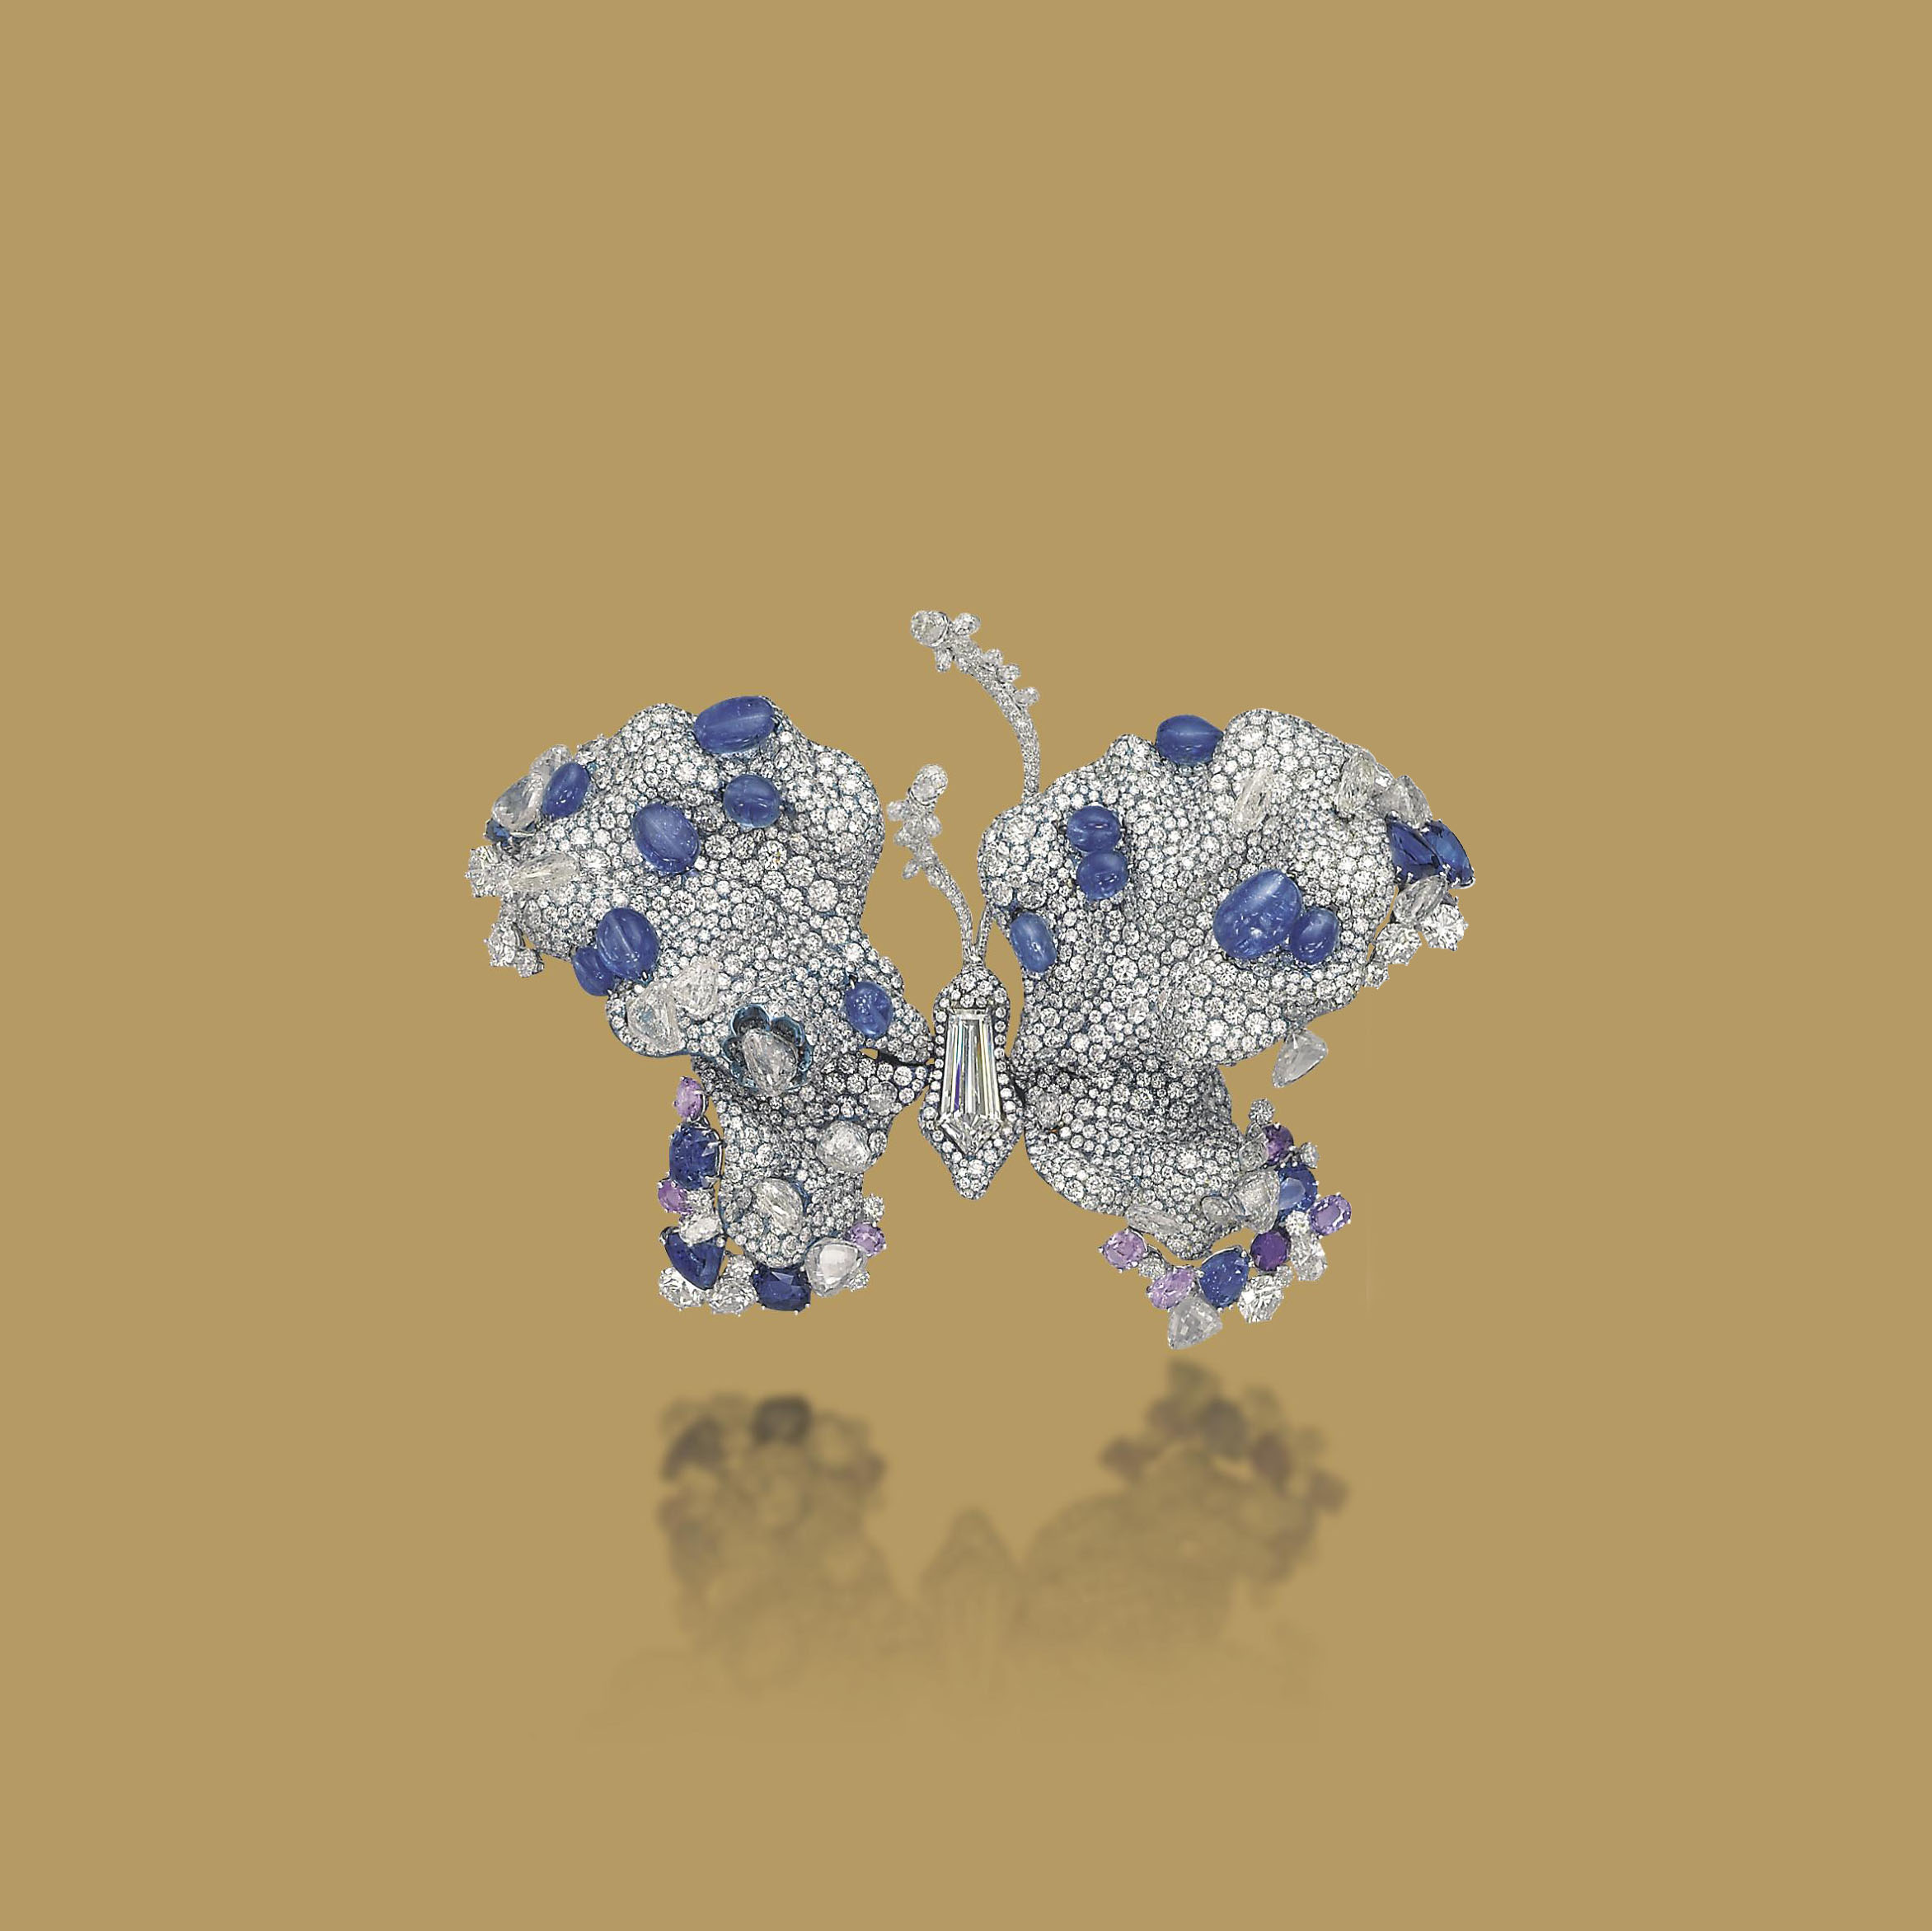 A SAPPHIRE AND DIAMOND 'TRANSCENDENCE' BUTTERFLY BROOCH, BY CINDY CHAO THE ART JEWEL